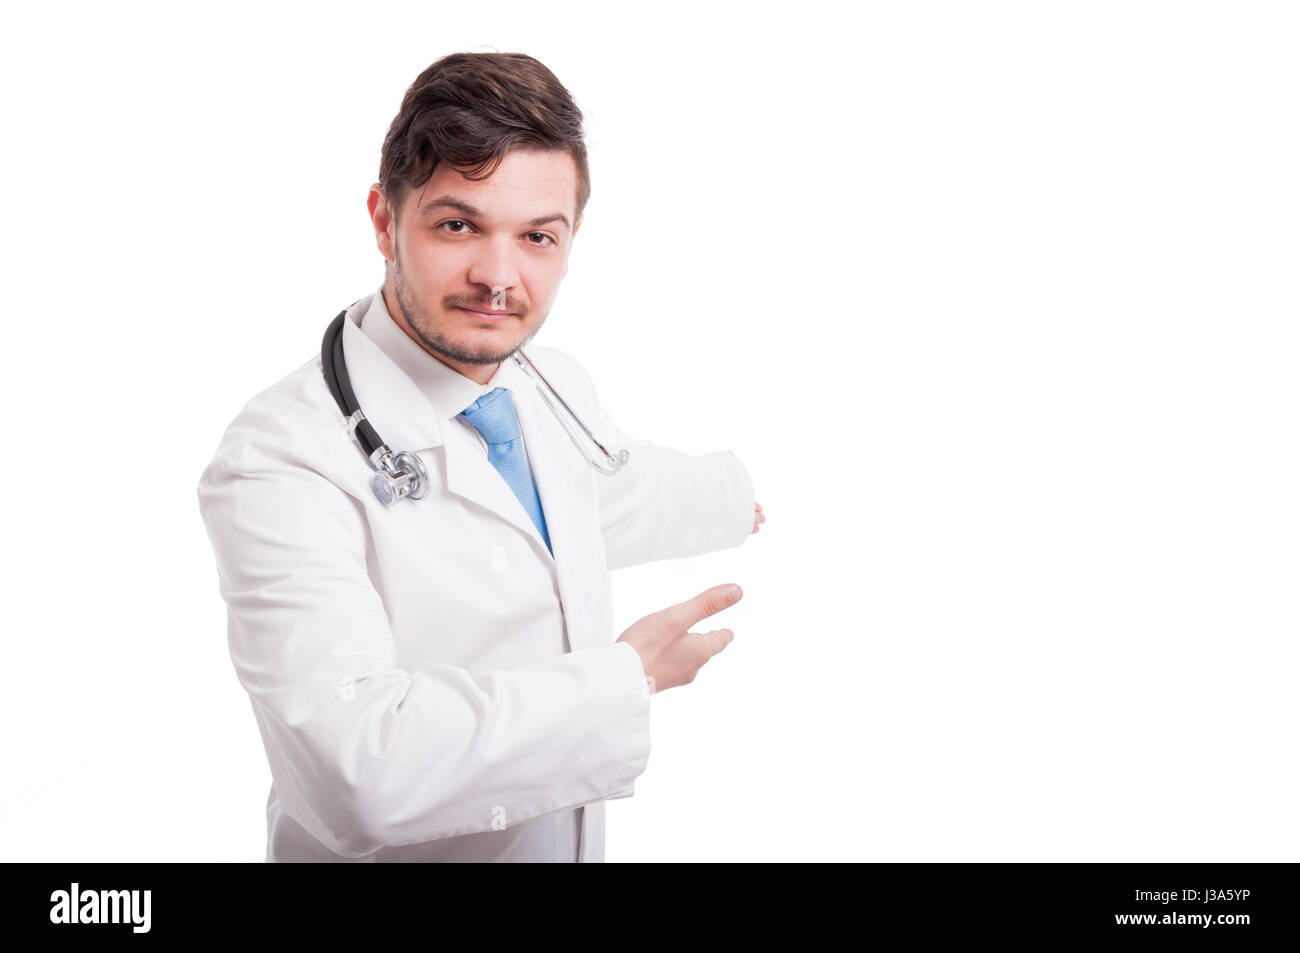 Happy medic in white coat inviting you inside isolated on white background with advertising area - Stock Image